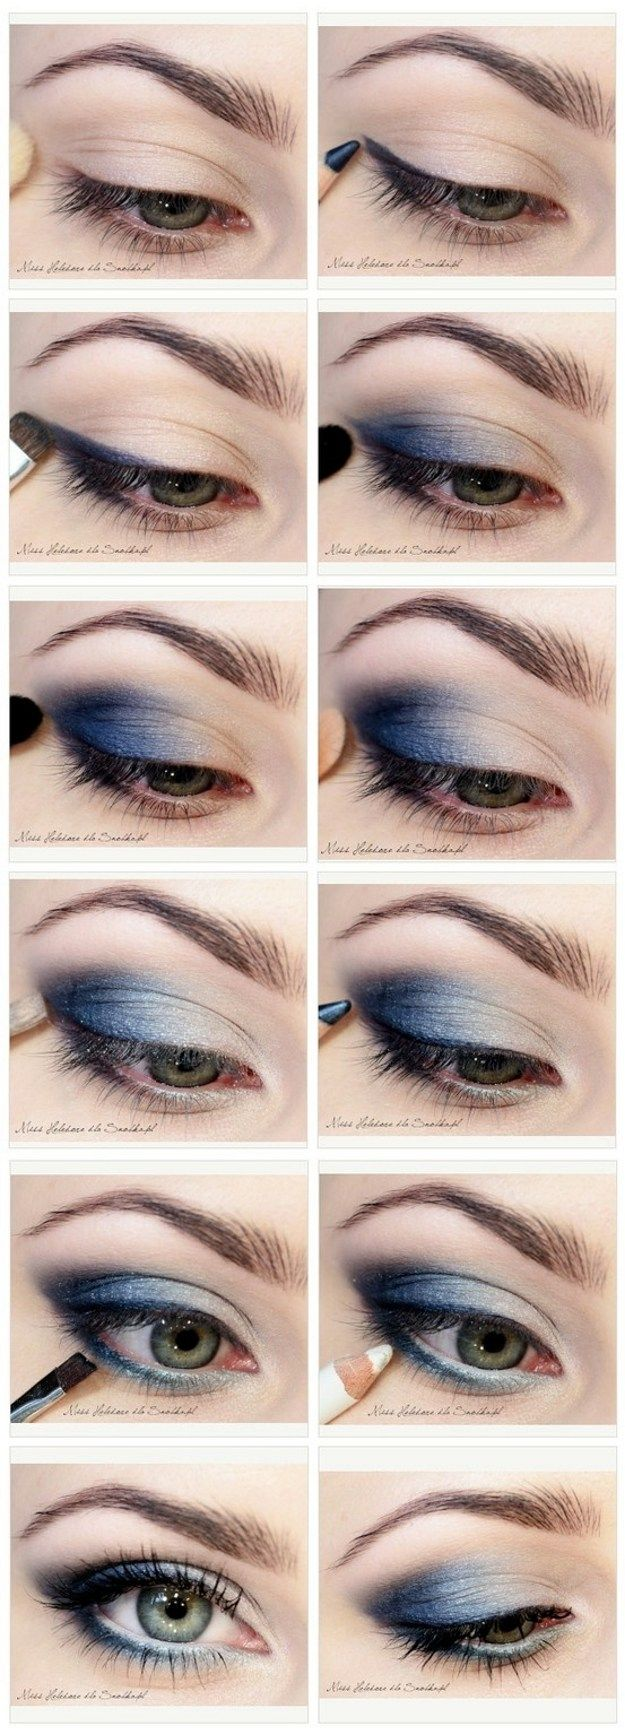 Photo of 15 Simple Step By Step Make Up Tutorials For Beginners Petramode.info